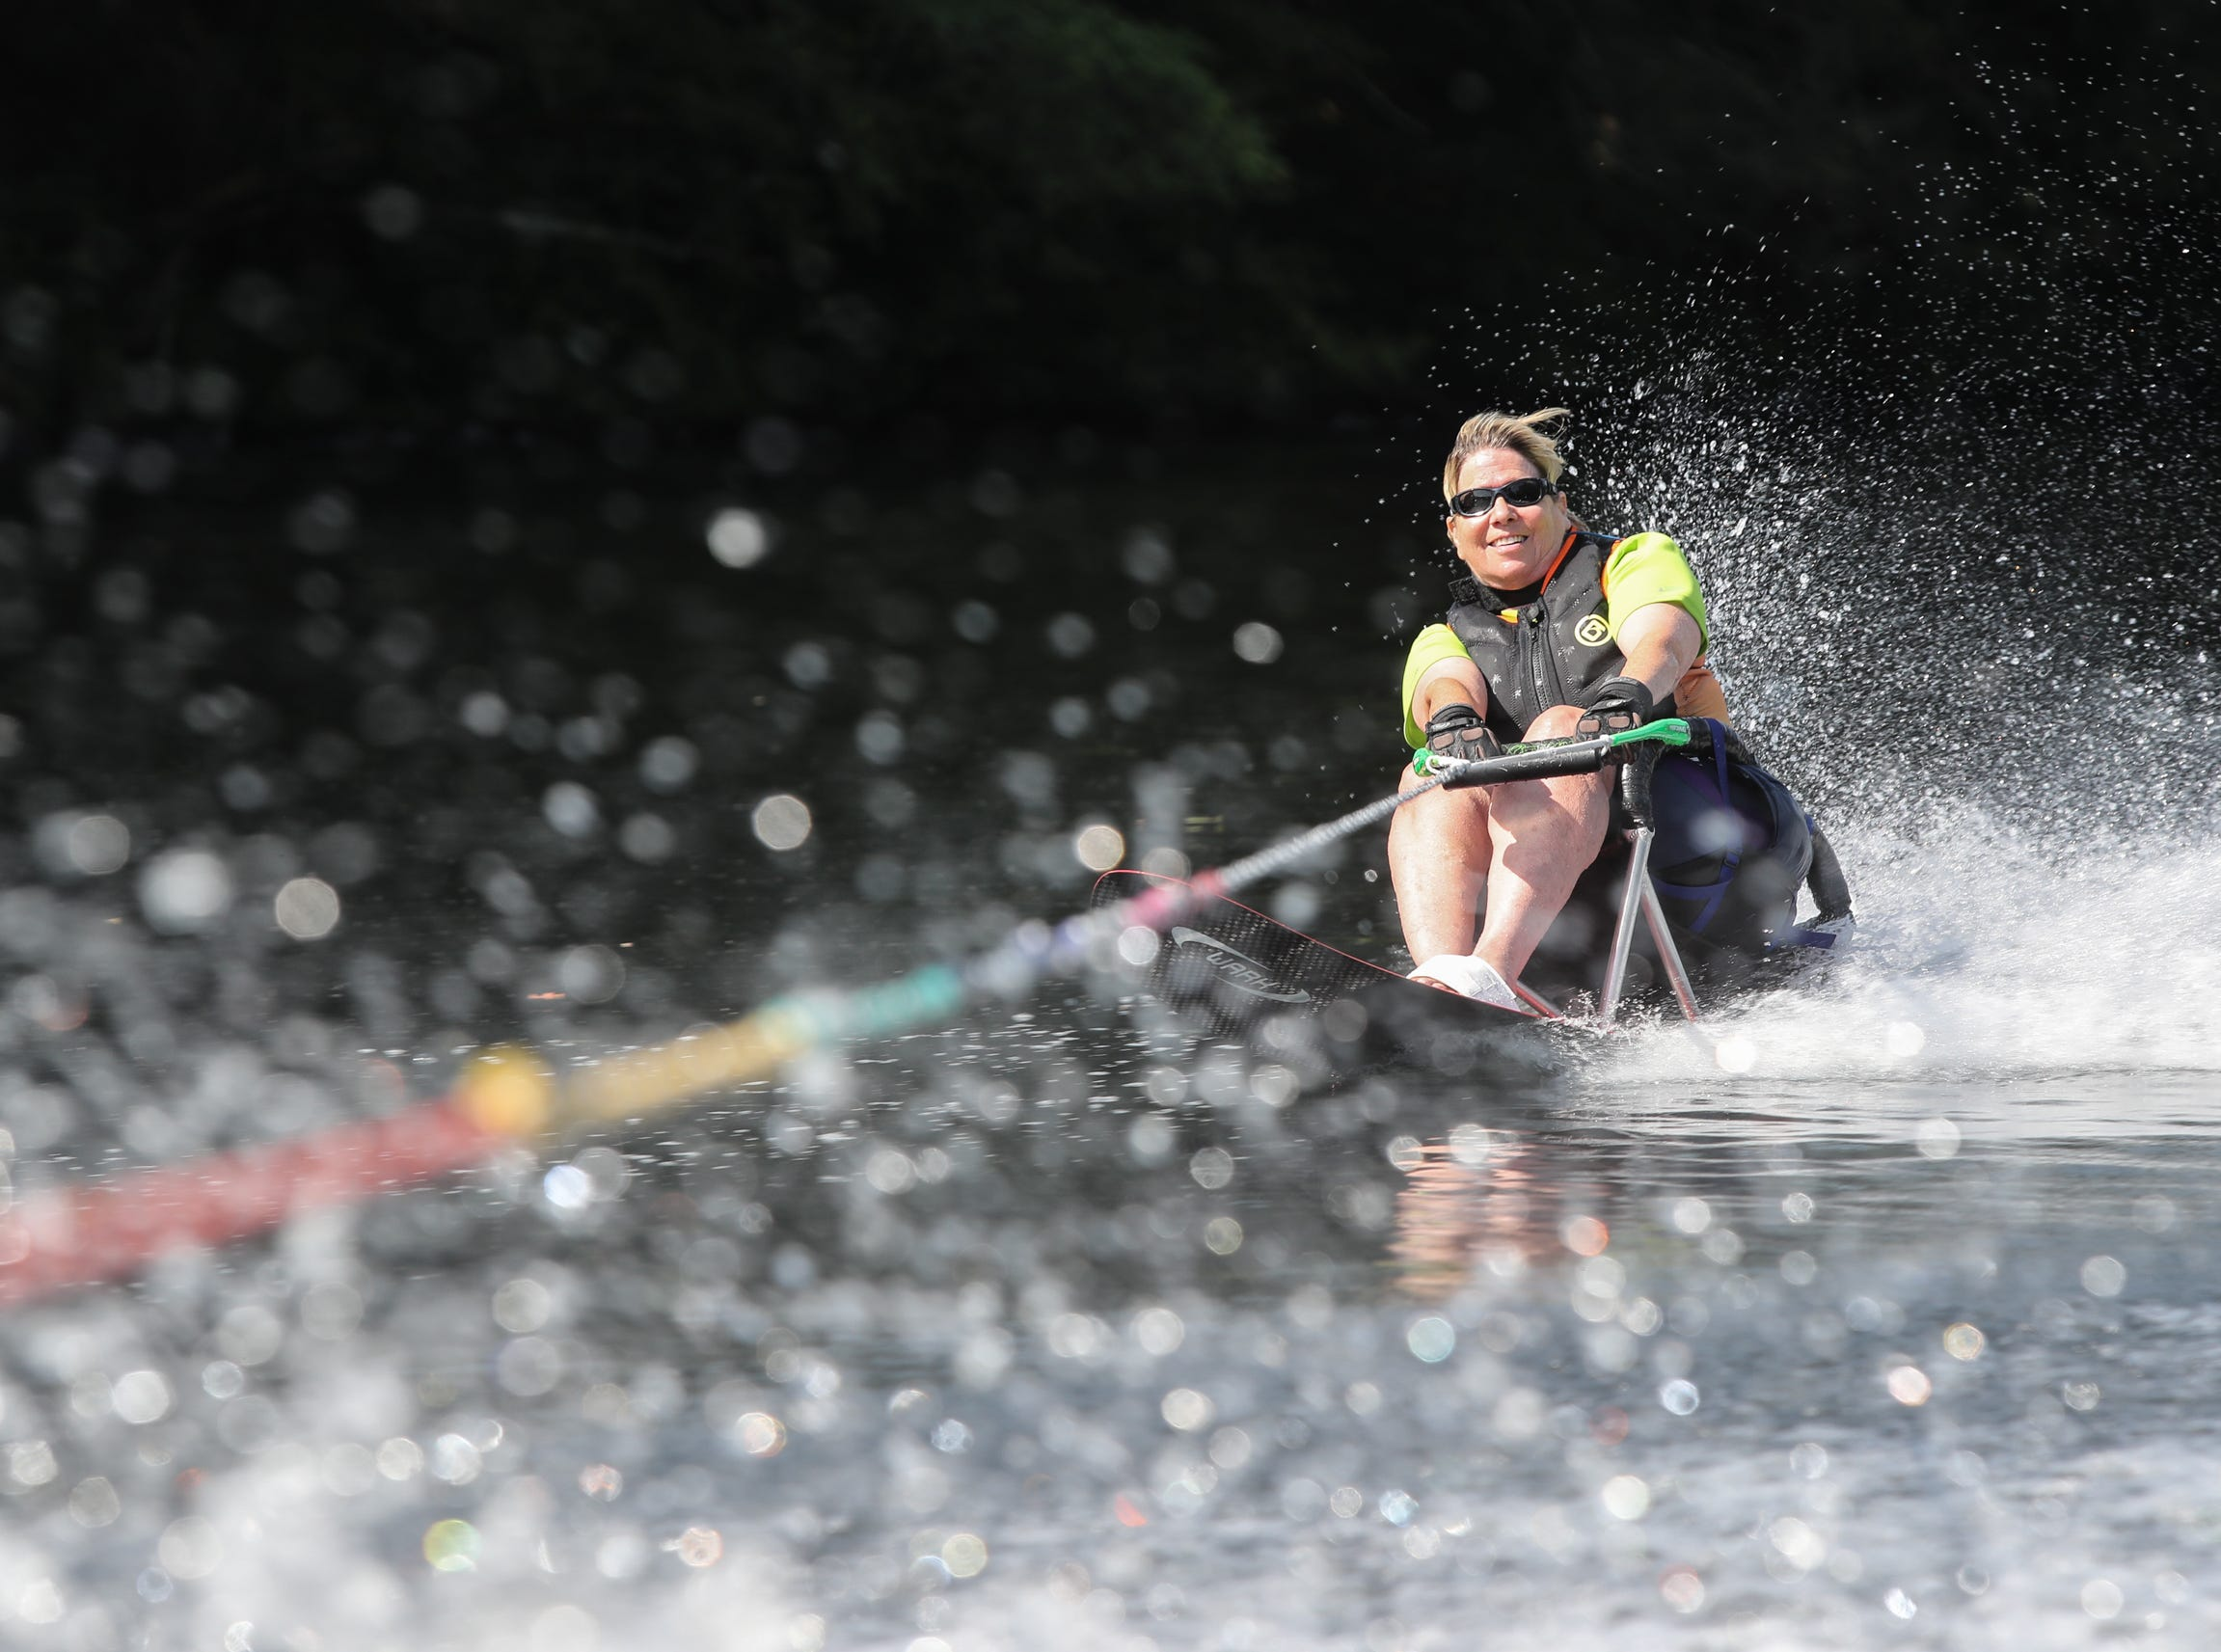 Caren Landis, 63, from Valley Cottage uses a specialized ski with a seat to water skis on a section of the Pootatuck River in Sandy Hook, Conn. on Friday, July 13, 2018.  Landis suffered a spinal cord injury, is paralyzed from her mid-torso and relys on a wheelchair.